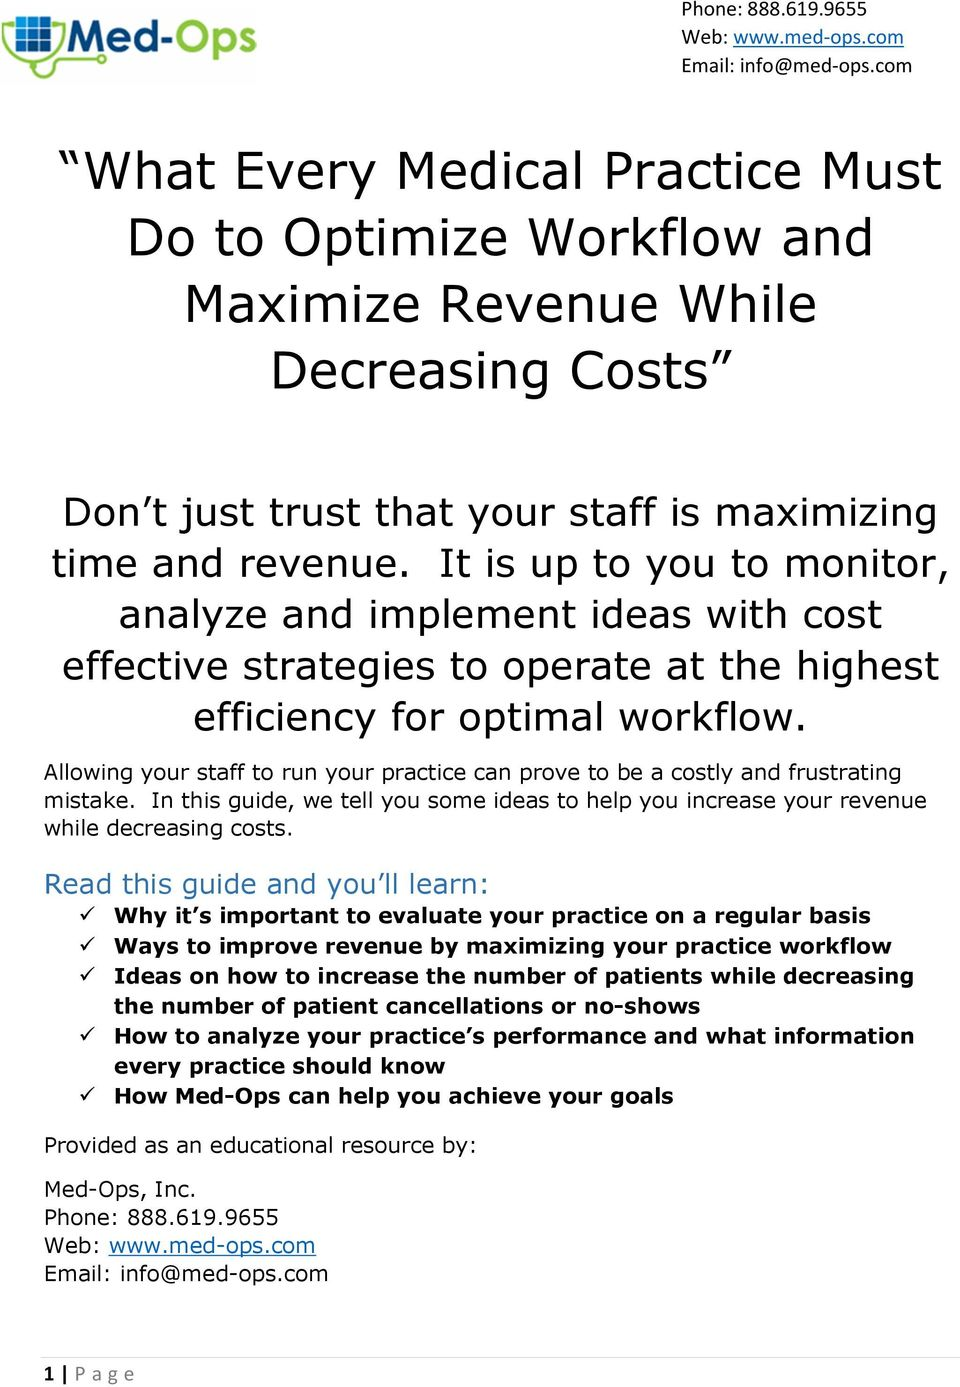 Allowing your staff to run your practice can prove to be a costly and frustrating mistake. In this guide, we tell you some ideas to help you increase your revenue while decreasing costs.